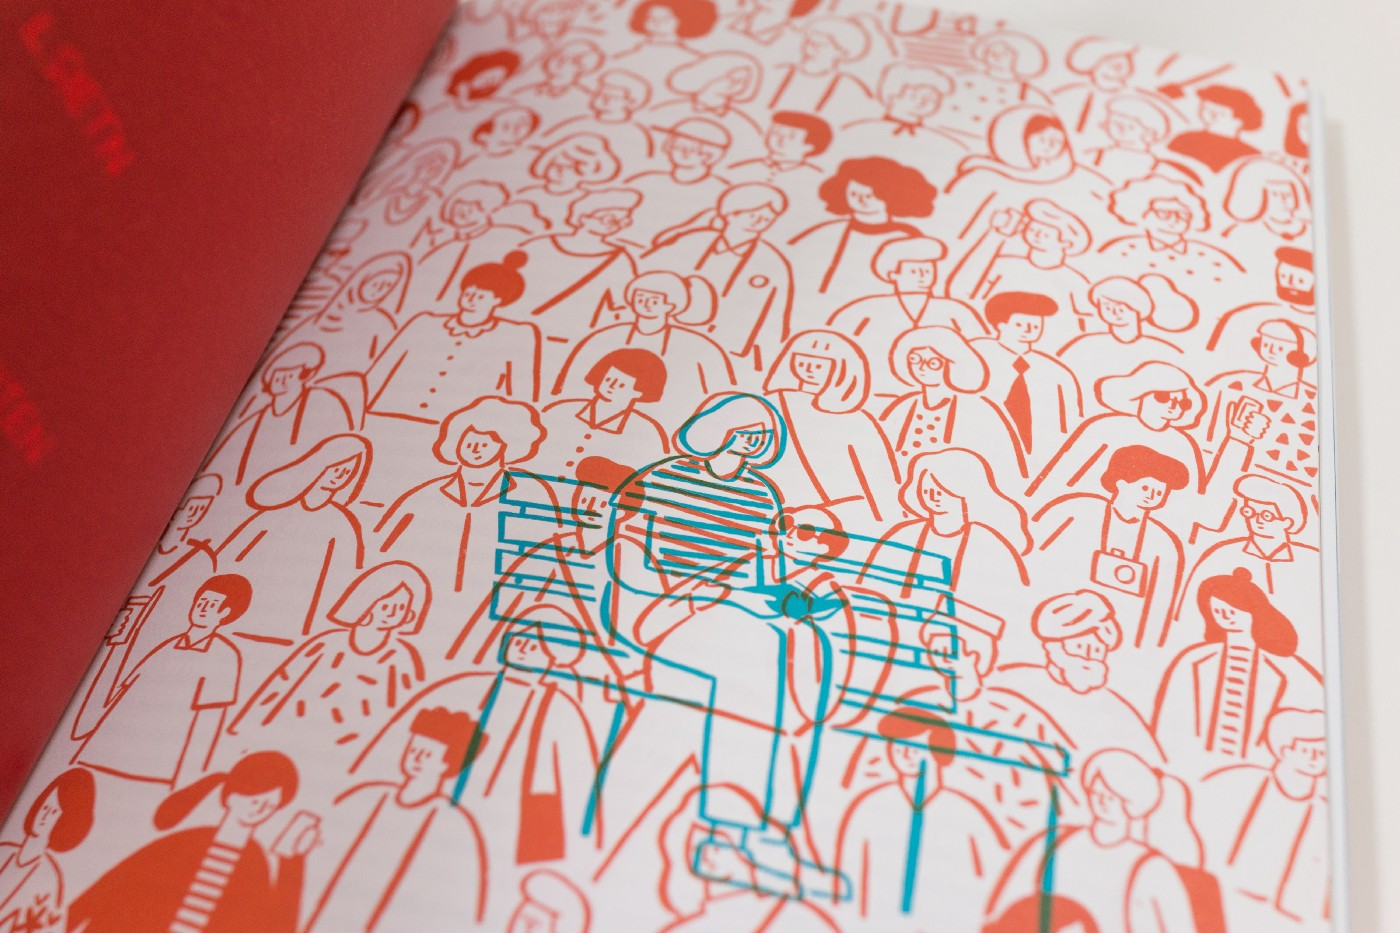 Illustration of a woman sitting on a bench among a large group of people